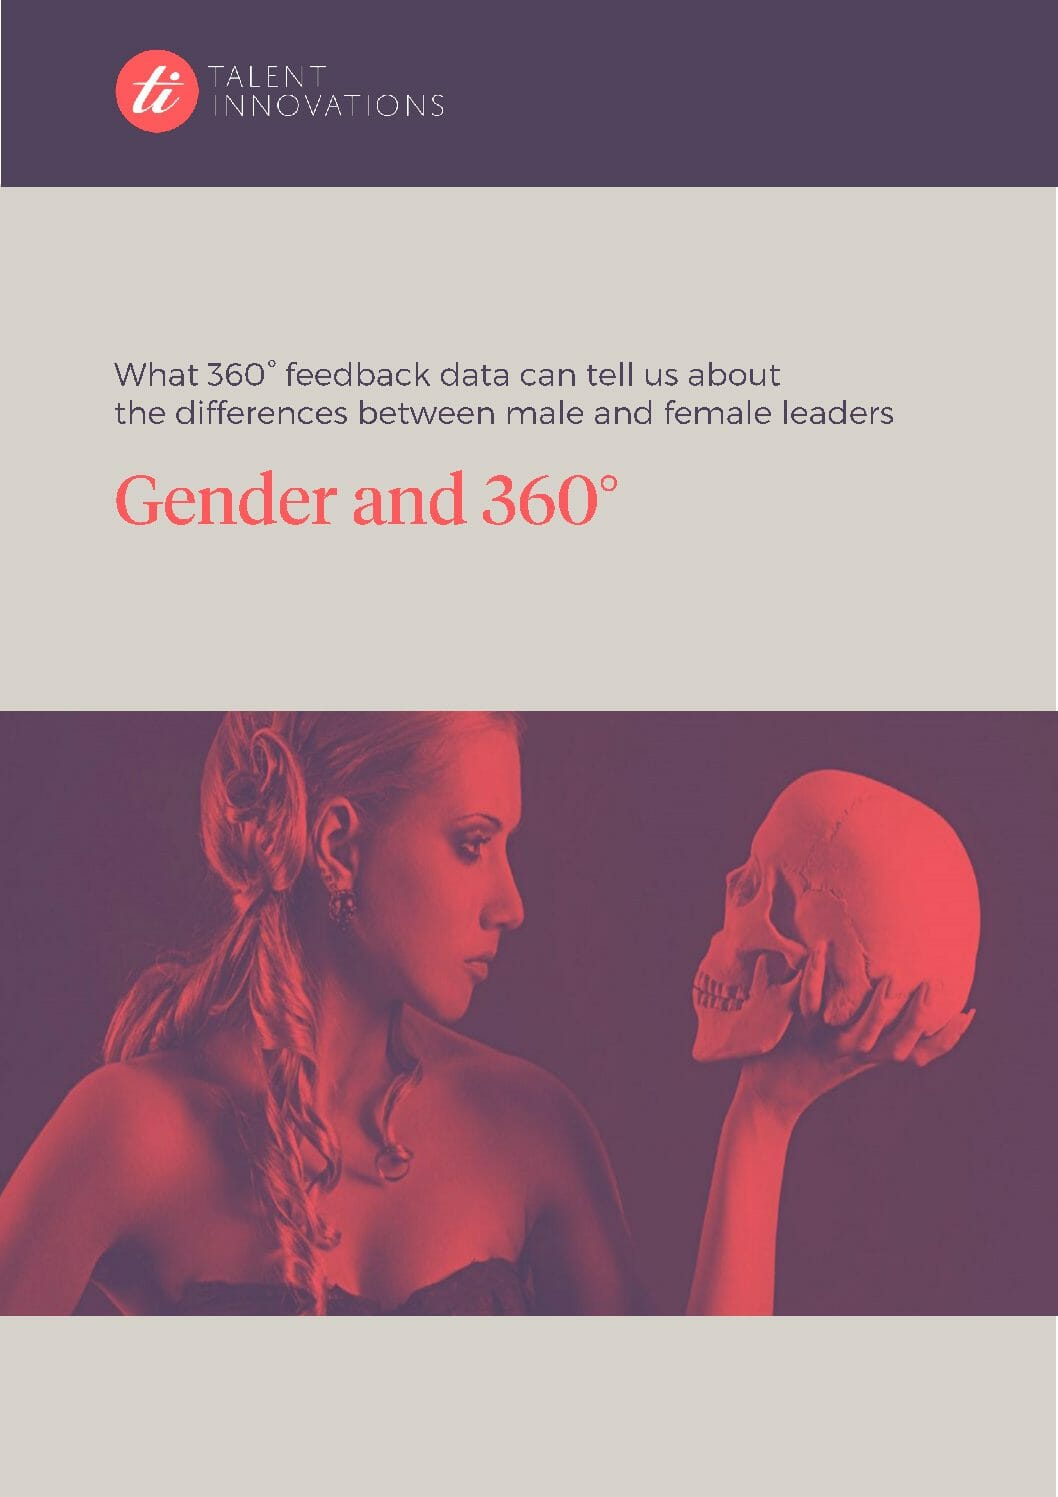 Gender and 360